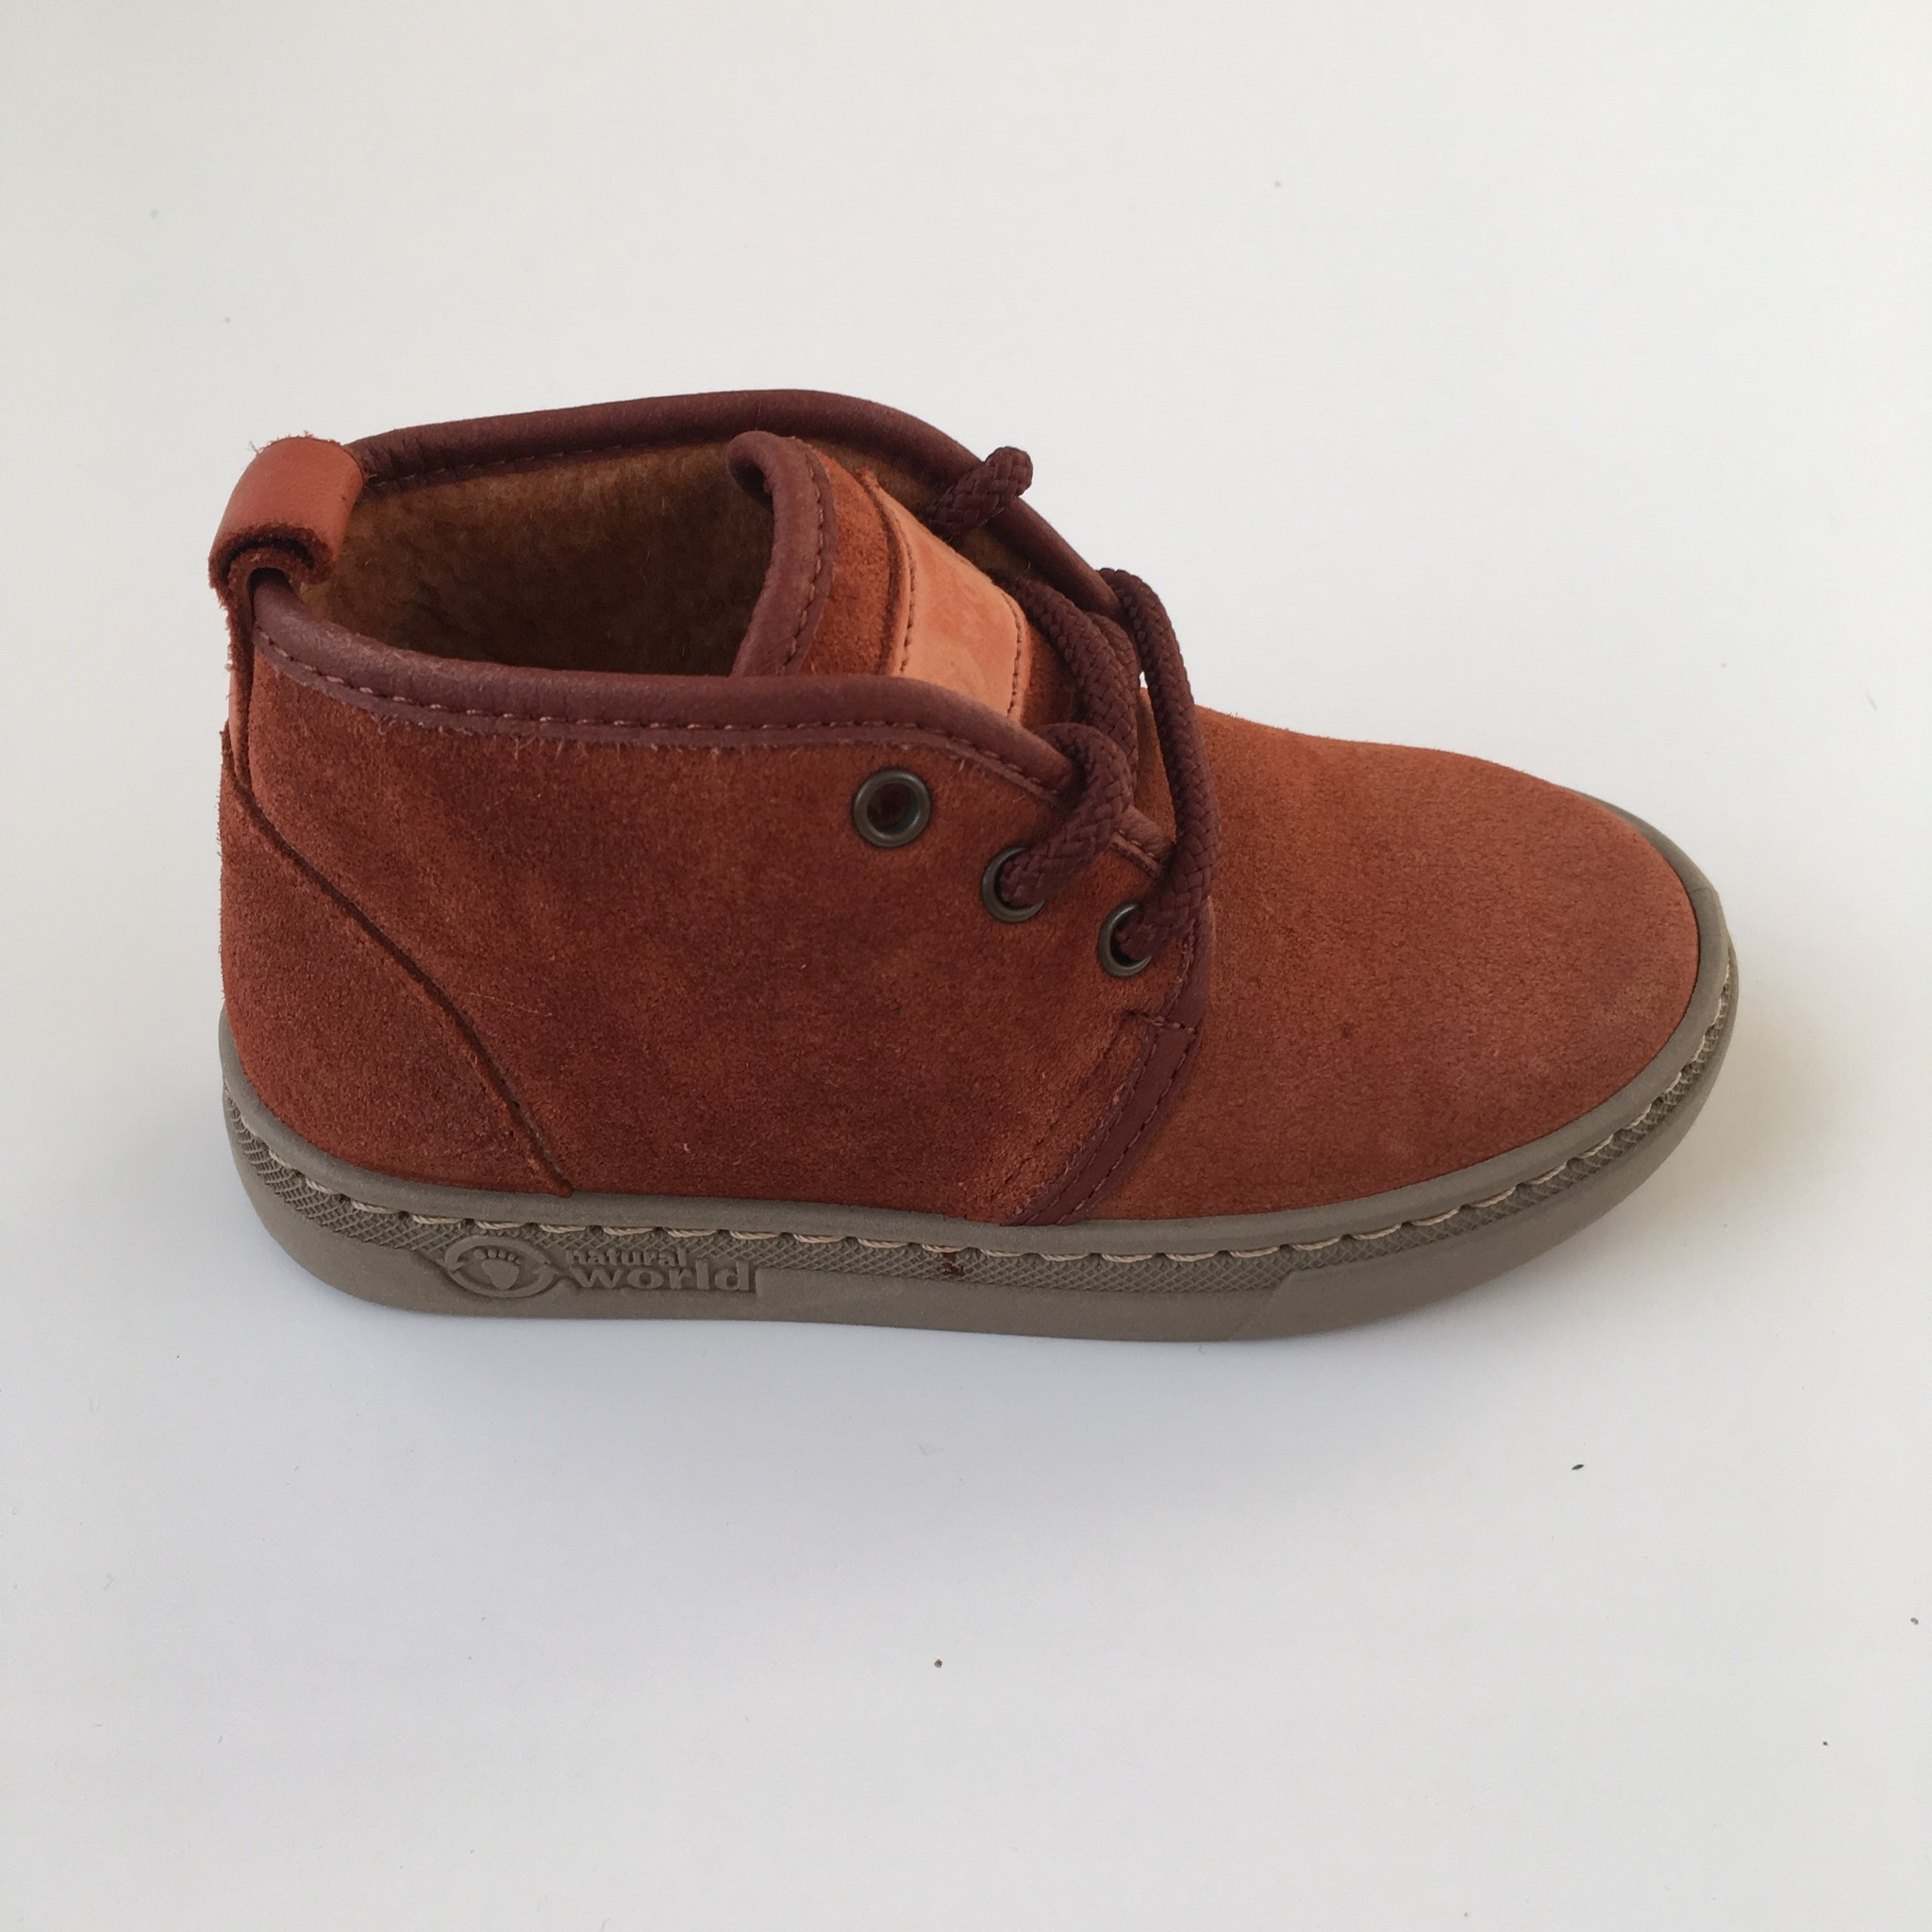 NATURAL WORLD suede ankle booties wool lined ALIM - 100% natural rubber sole - rusty orange - 25 to 38